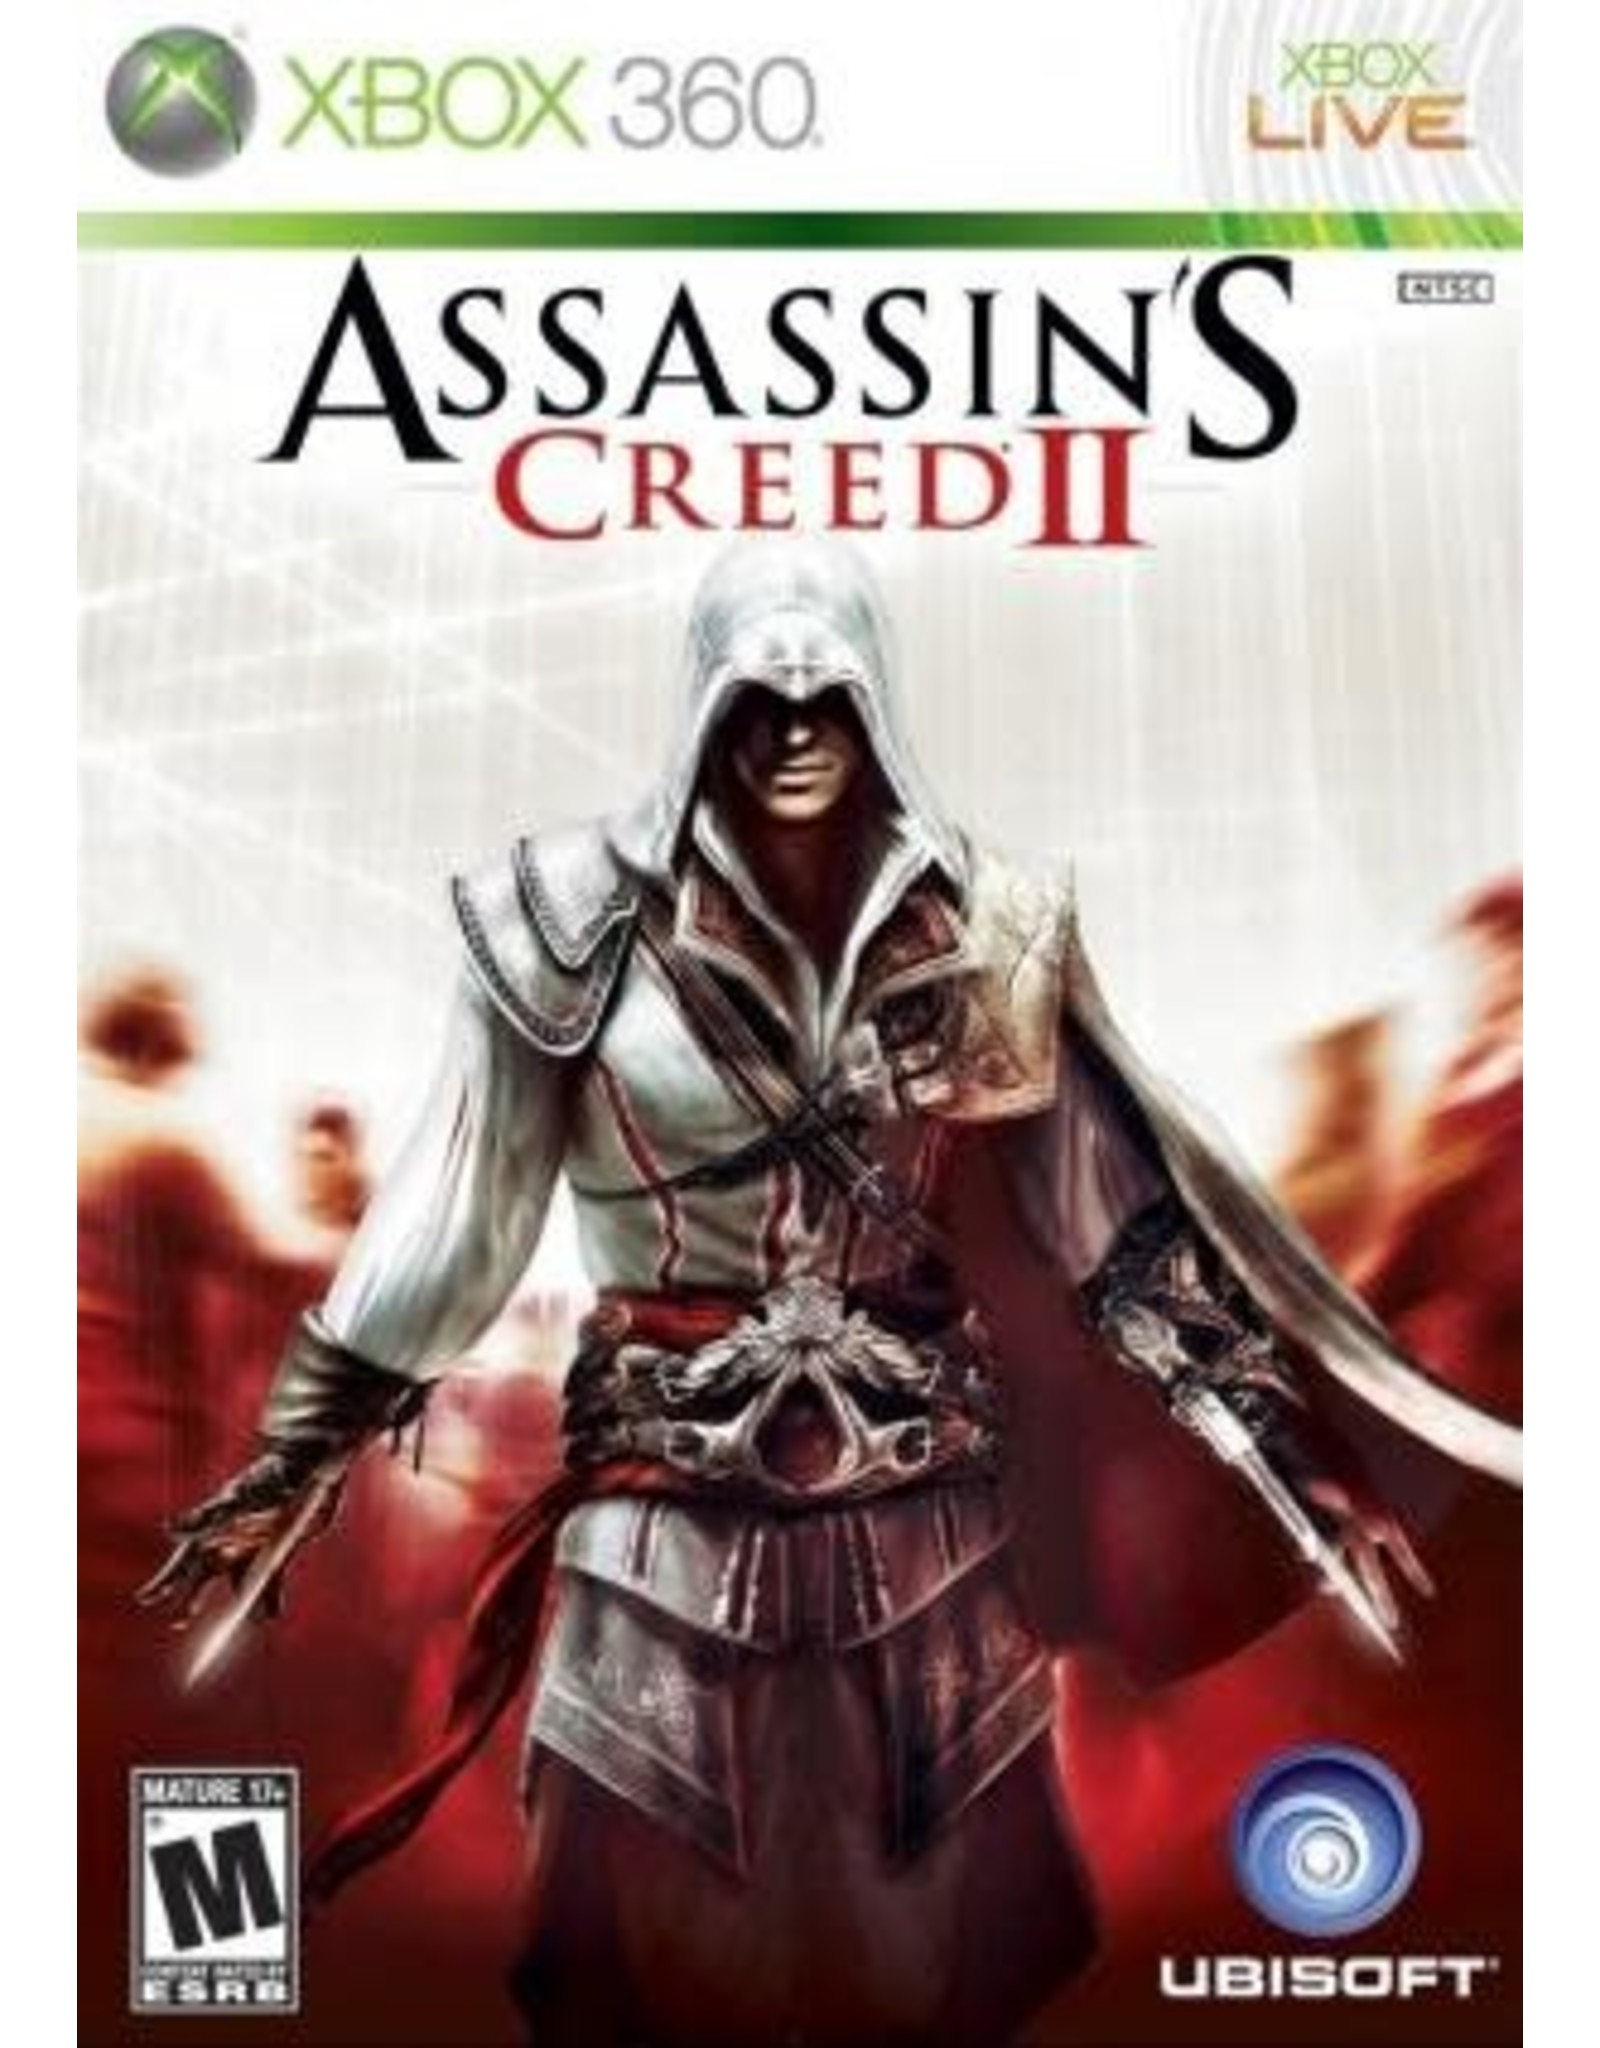 Xbox 360 Assassin's Creed II (CiB)